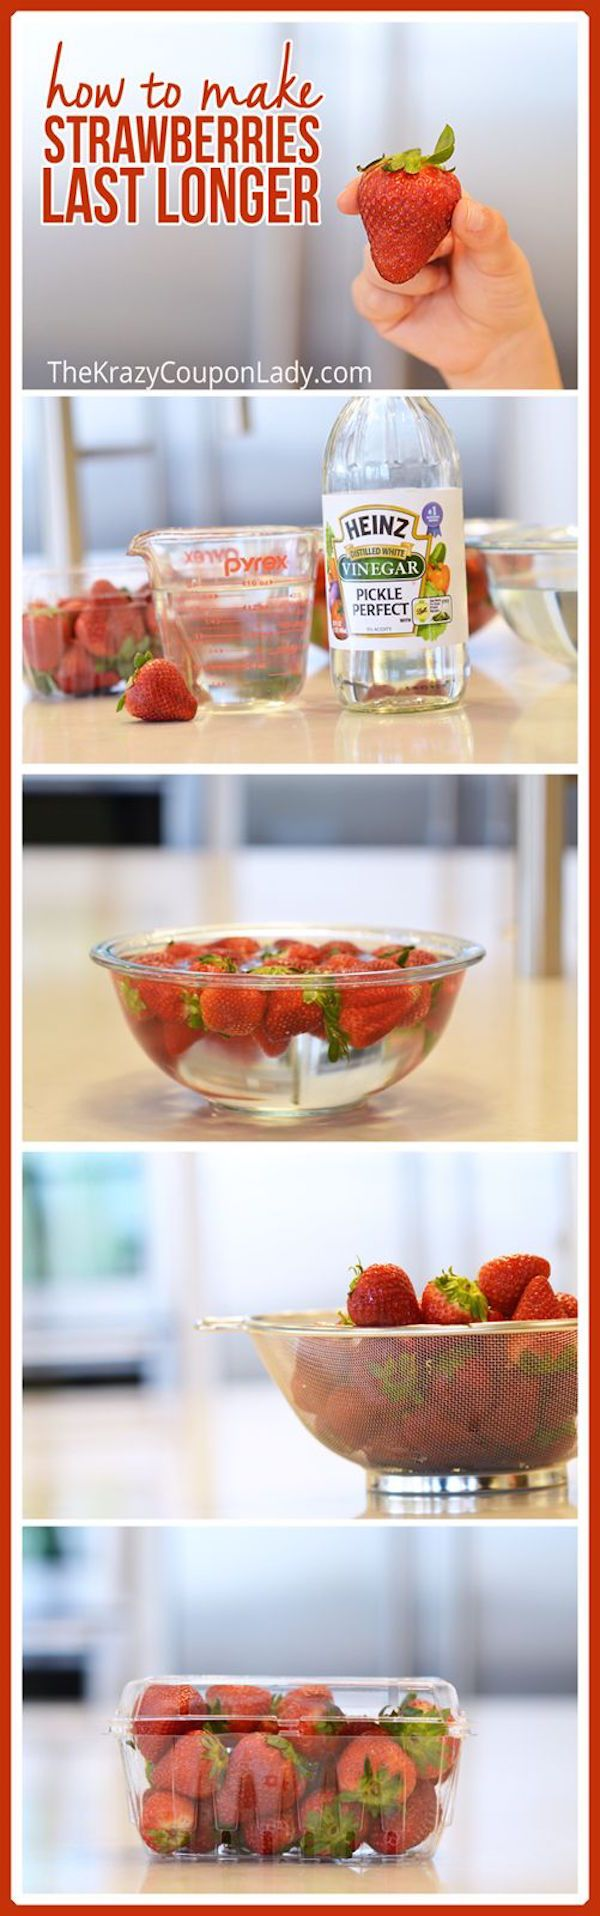 How to make strawberries last longer - 3 cups water, 1 cup vinegar, soak 10 minutes, dry COMPLETELY - vinegar taste disappears only if completely dry - pack back in original breathable container. Extends life at least 2-3 days.